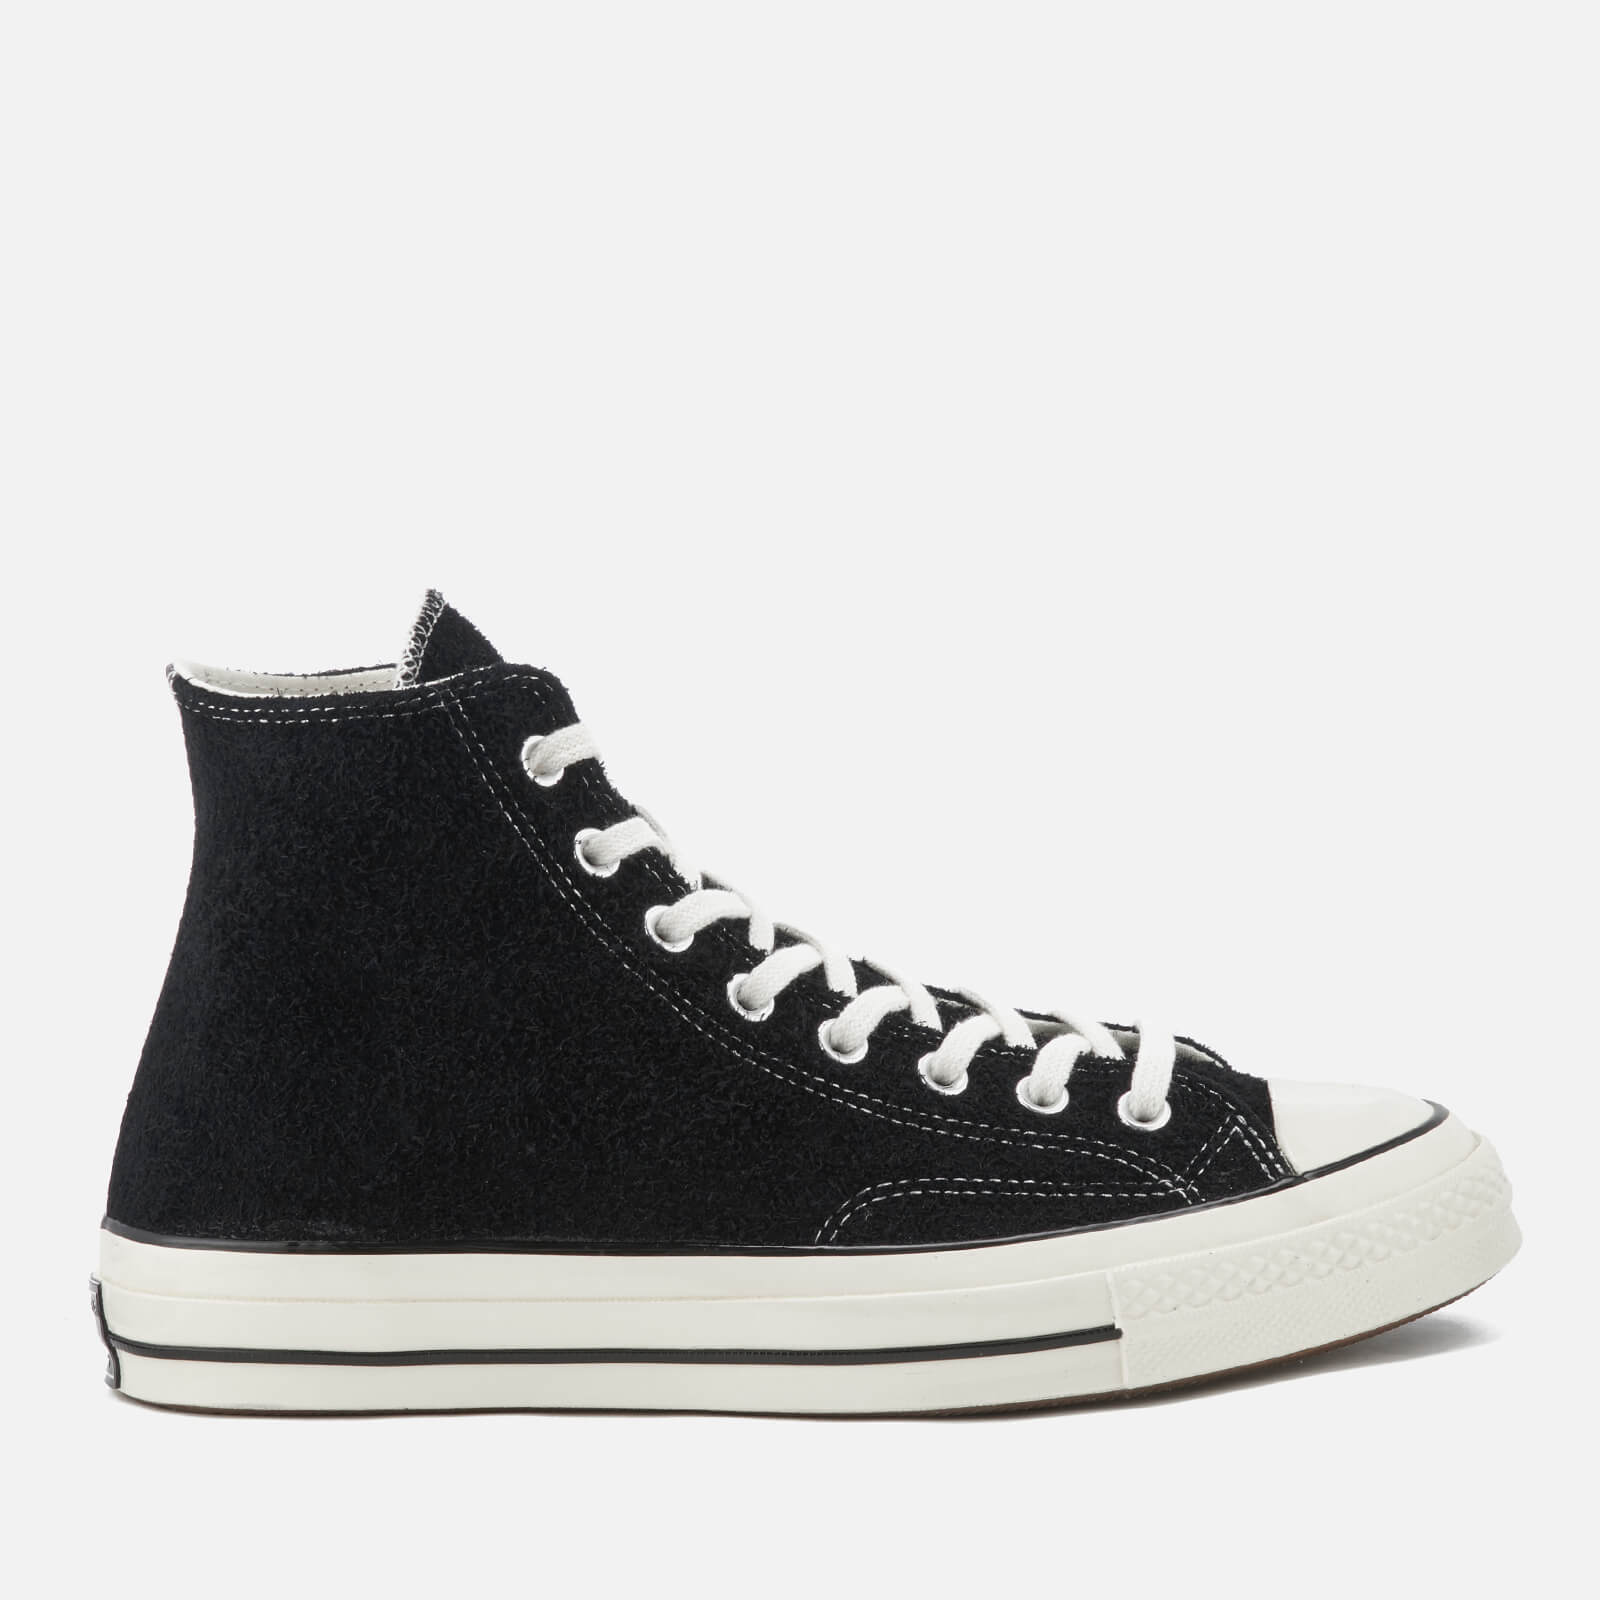 517a3287842d Converse Men s Chuck Taylor All Star  70 Hi-Top Trainers - Black Egret Egret  - Free UK Delivery over £50